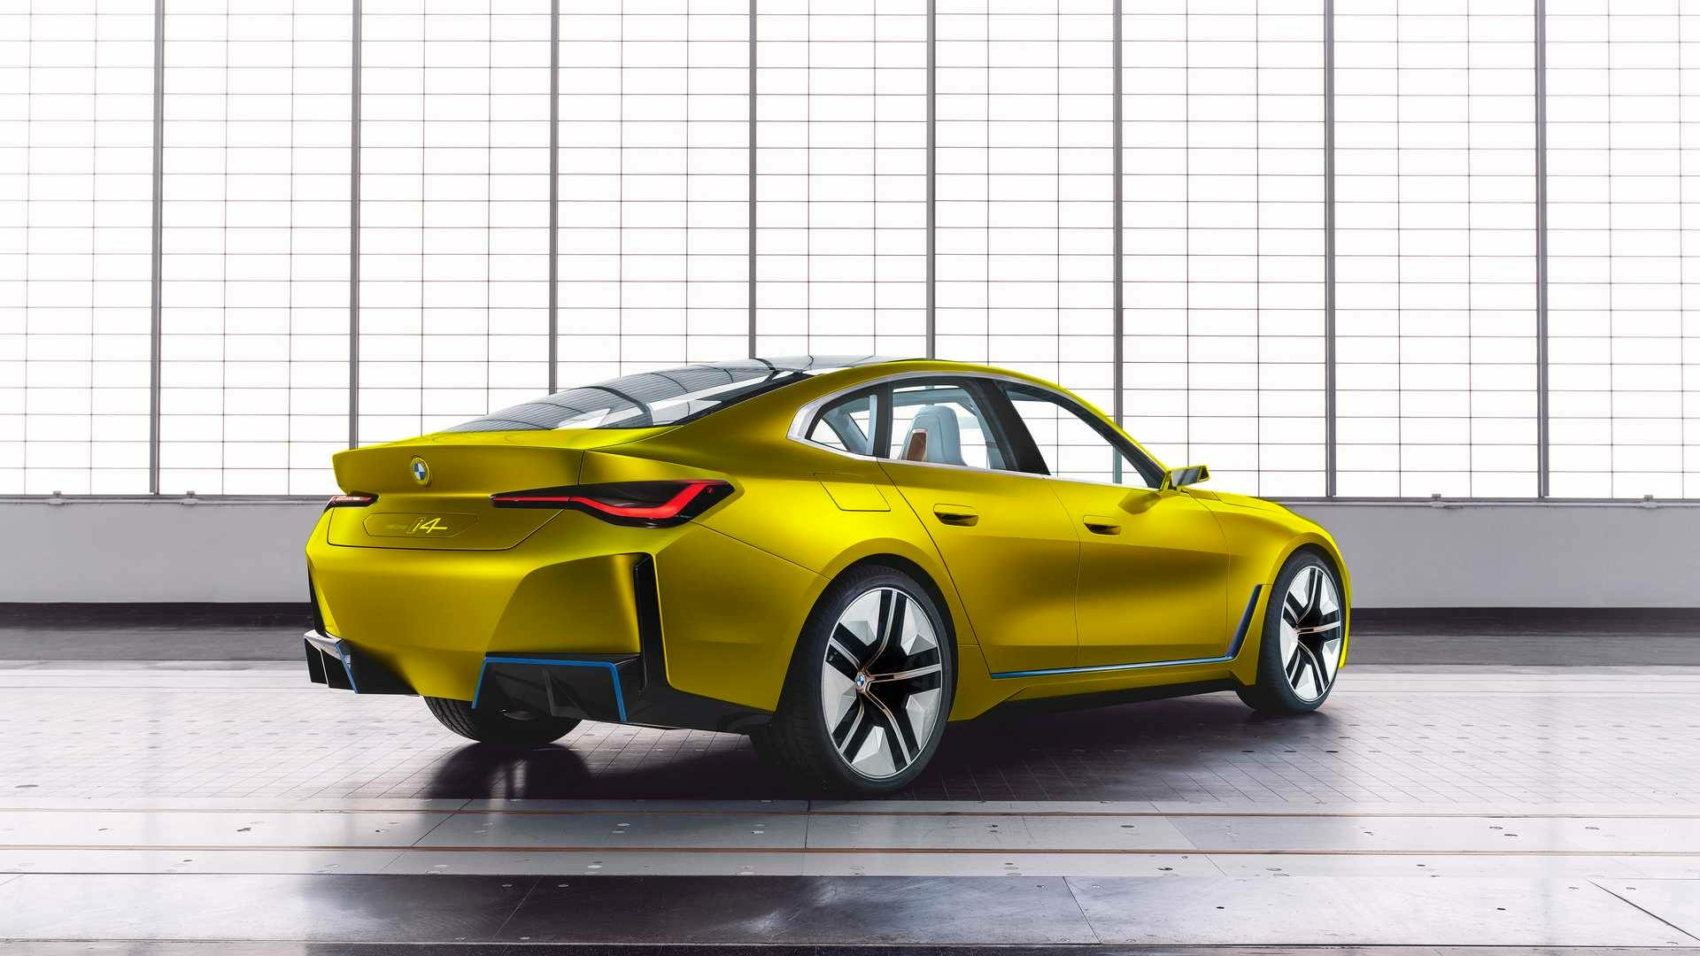 BMW-i4-concept-austin-yellow